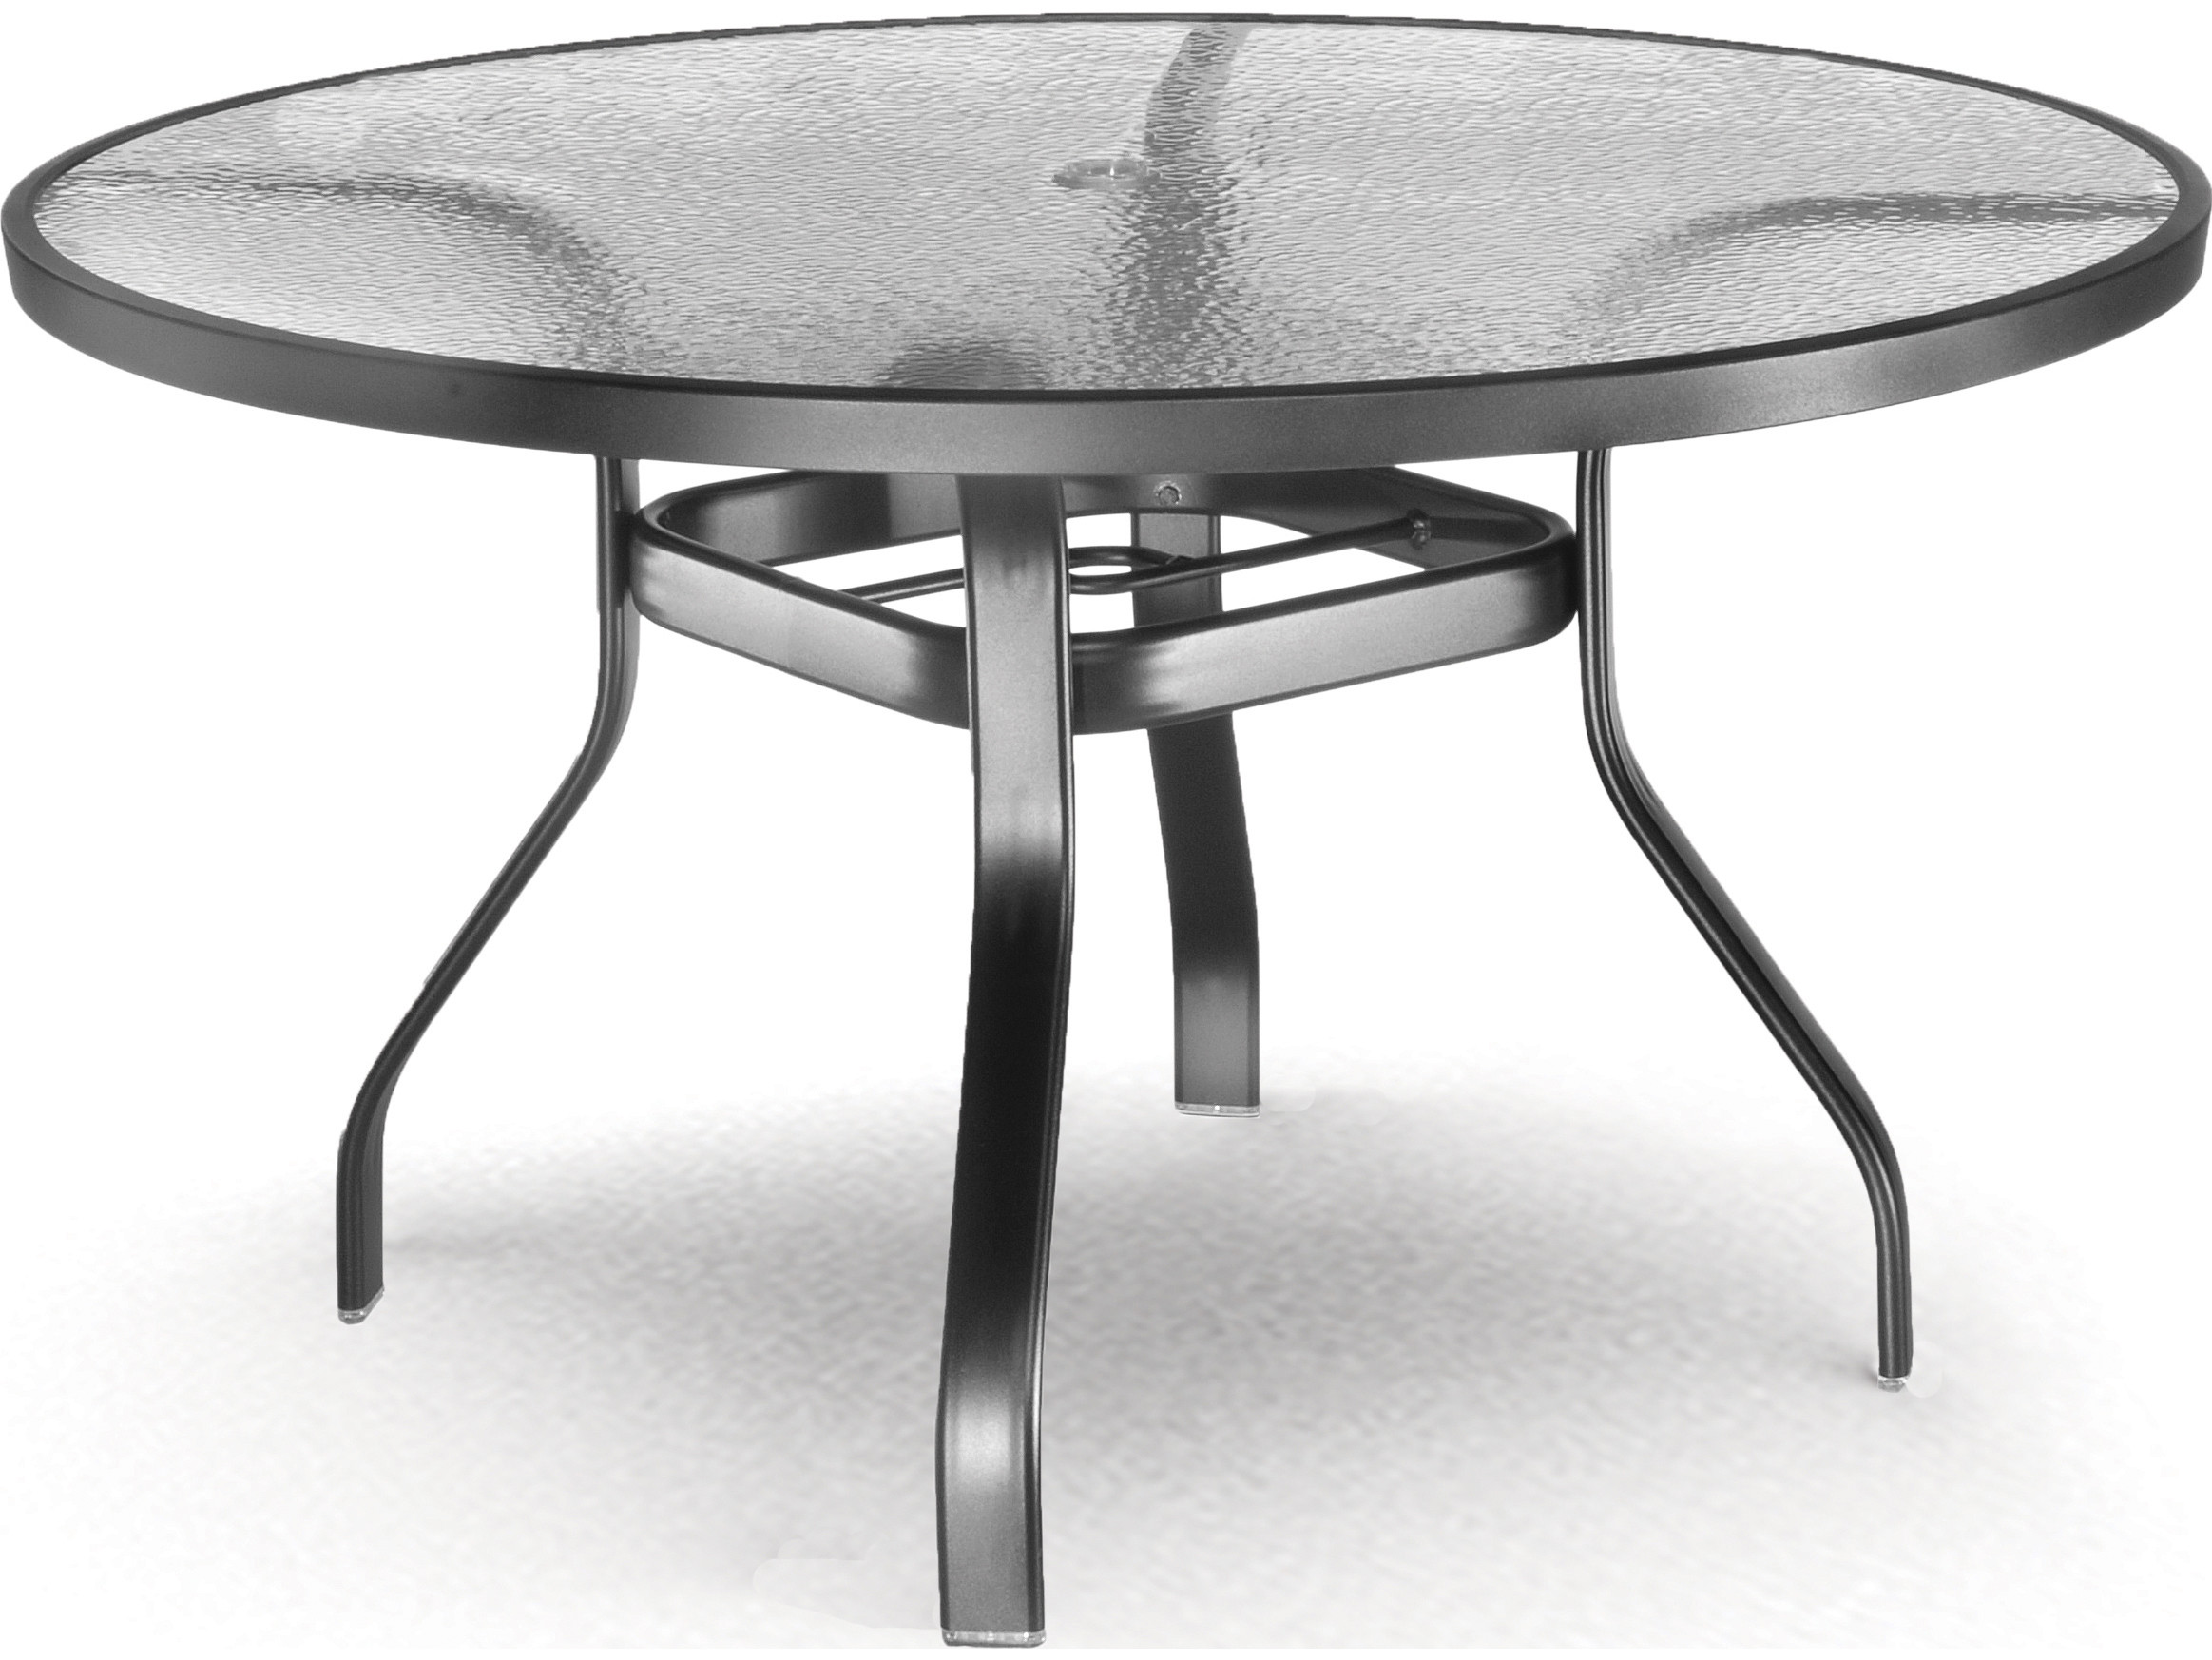 Best ideas about Round Patio Table . Save or Pin Homecrest Glass Aluminum 48 Round Dining Table with Now.